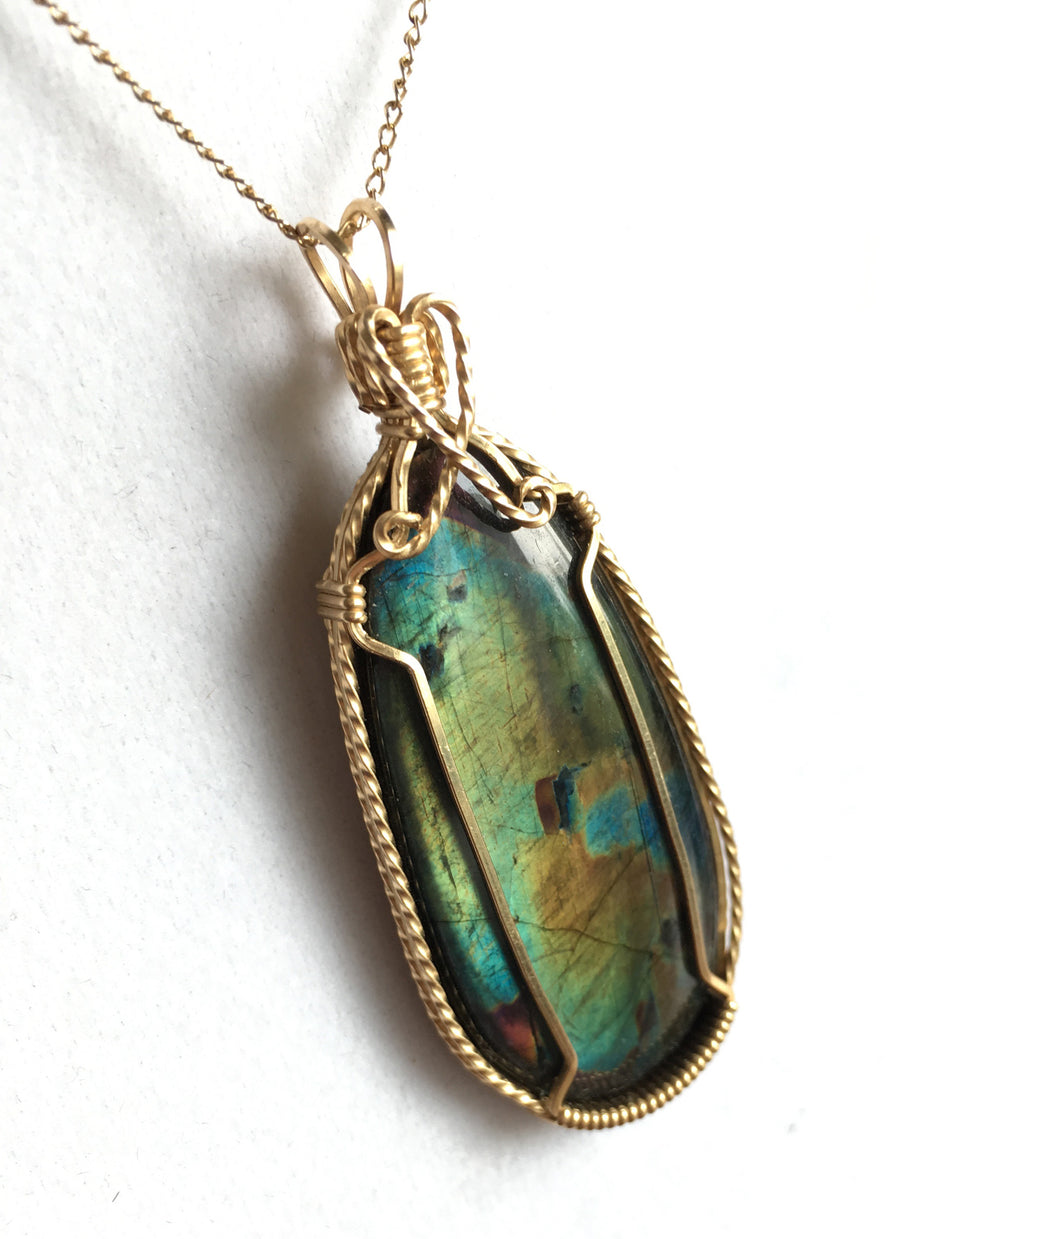 Spectrolite Labradorite Pendant Copper Wire Wrap Necklace